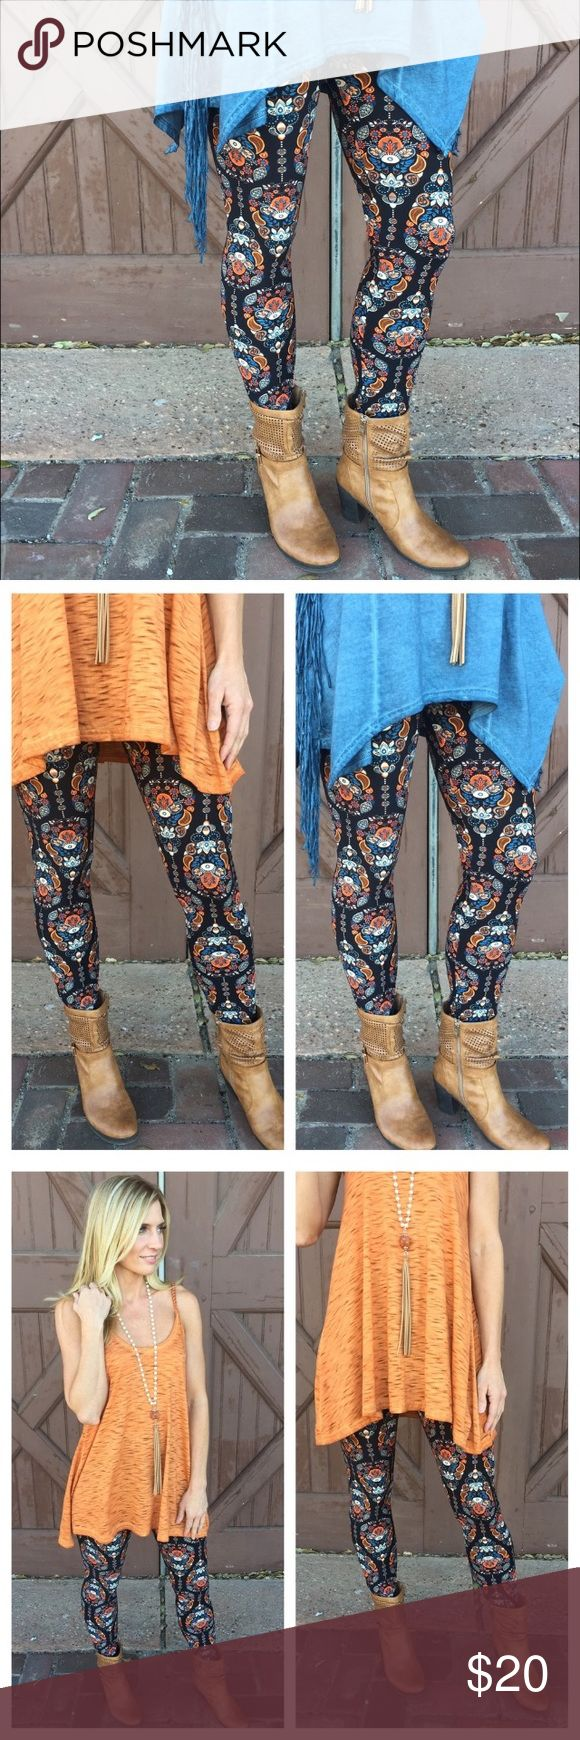 Leggings- Spring Paisley Print Leggings ❤️ Leggings- Spring Paisley Print Leggings ❤️ Super soft brushed knot leggings. 92% Polyester, 8% Spandex. One Size. Hand wash cold, do not bleach, hang dry. Made in China. Infinity Raine Pants Leggings